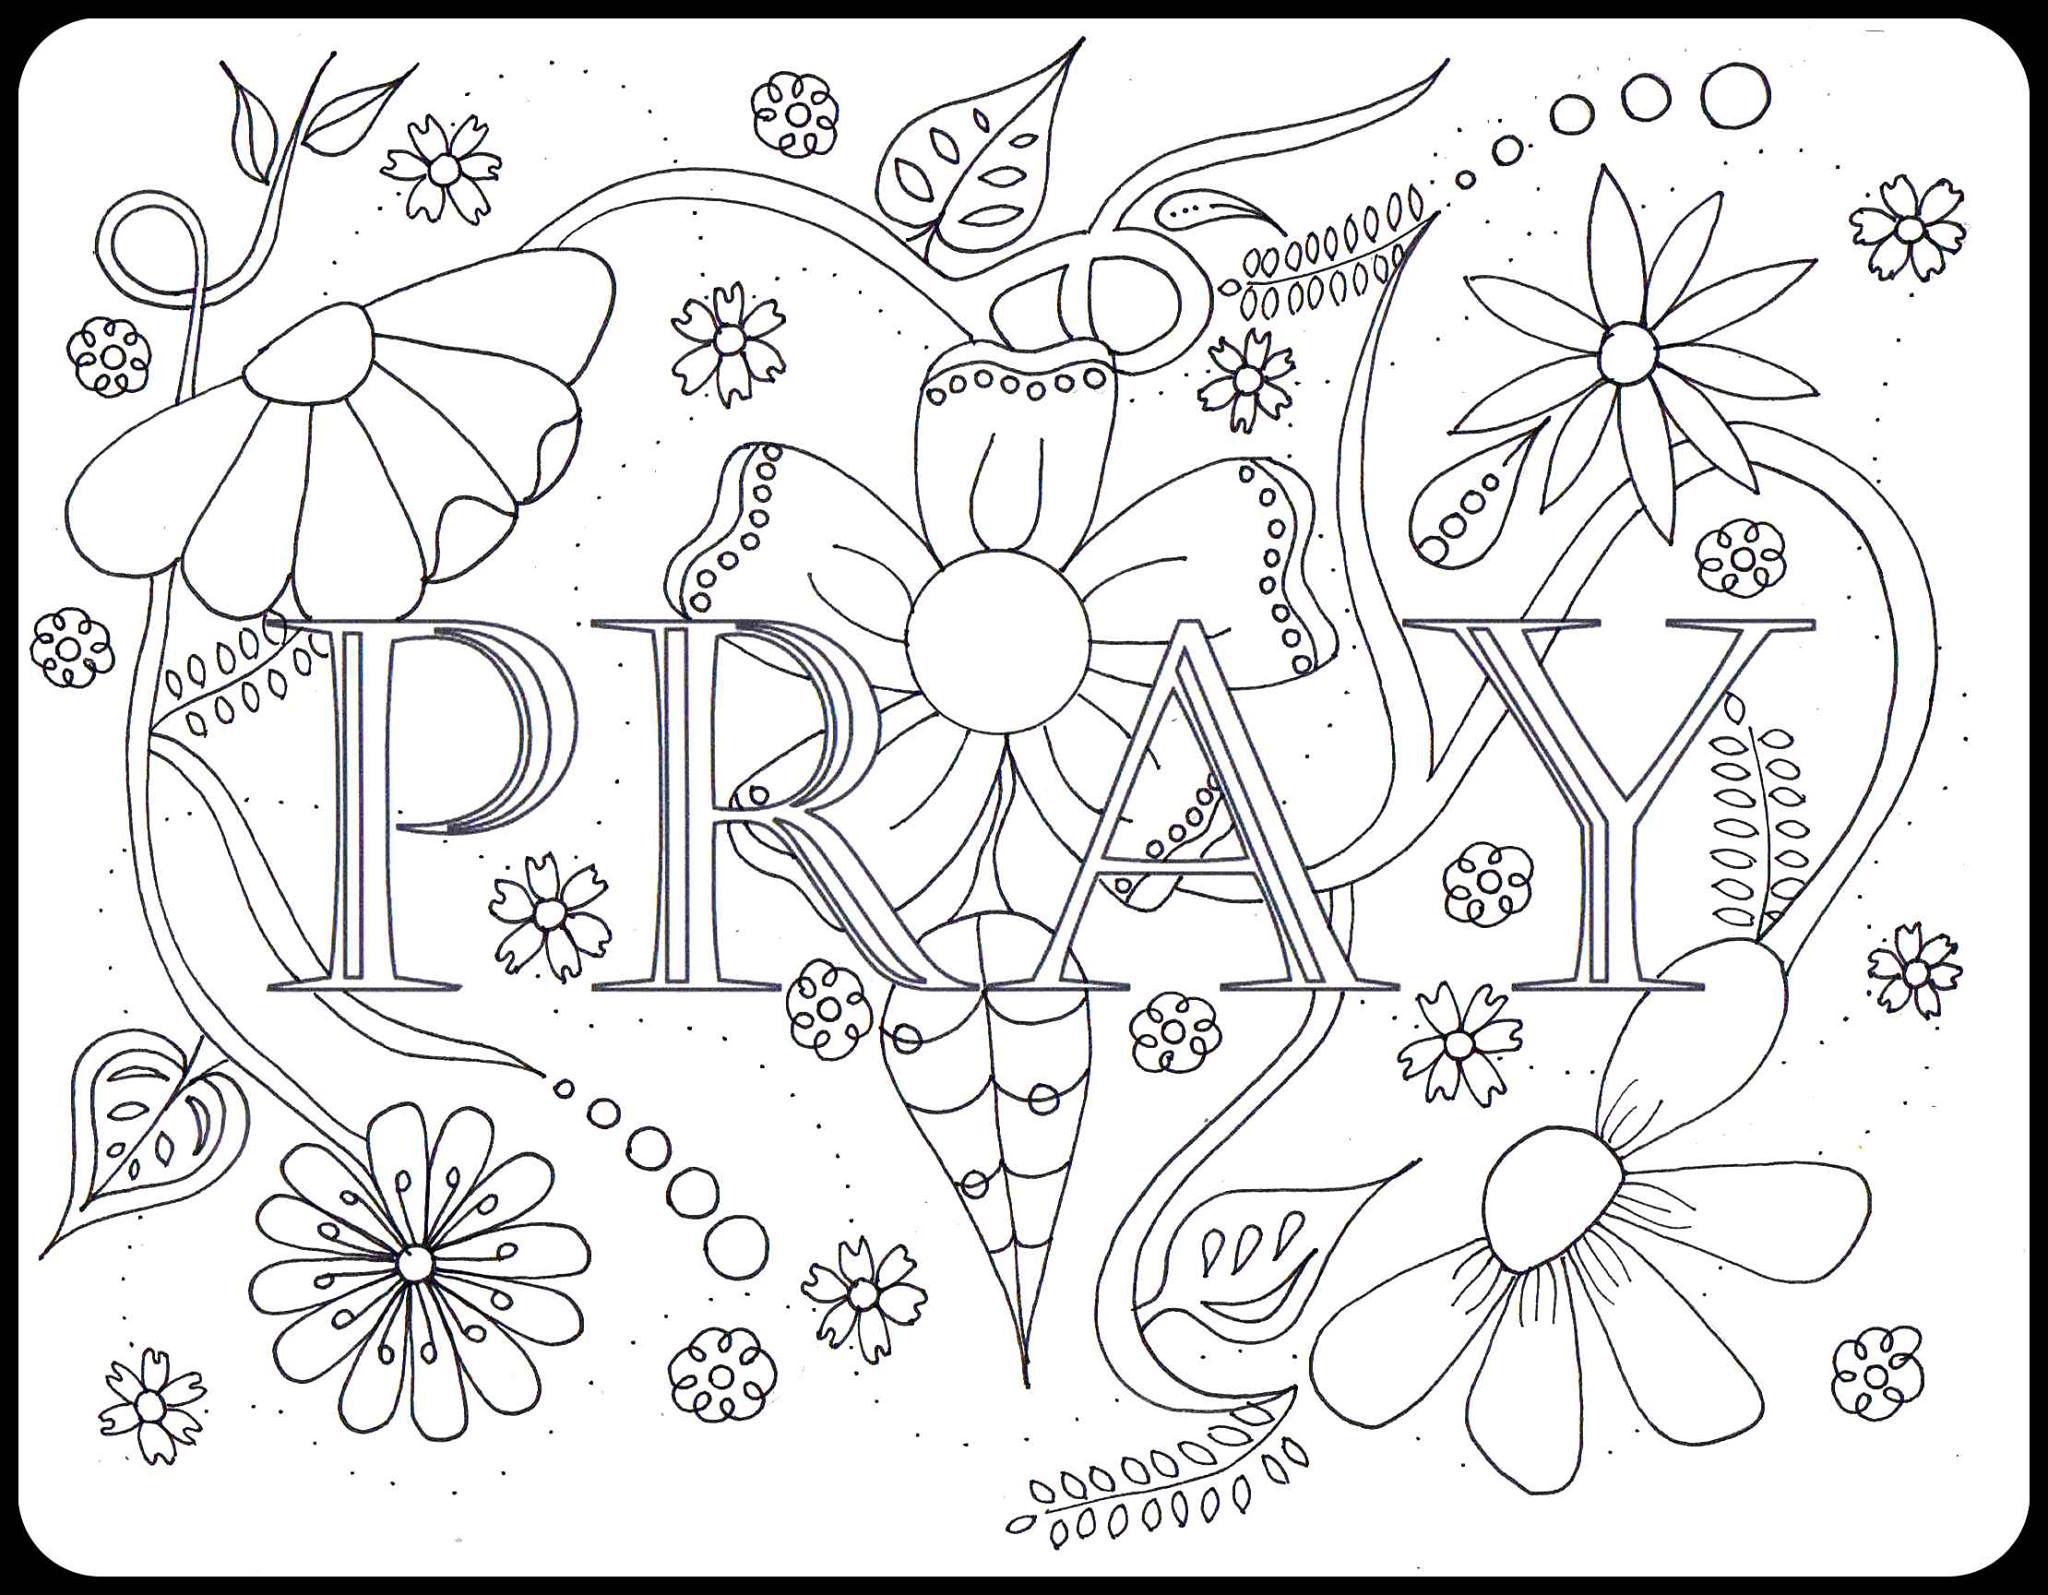 Kids coloring book pages free - Lds Coloring Pages With Best 20 Lds Ideas On Pinterest